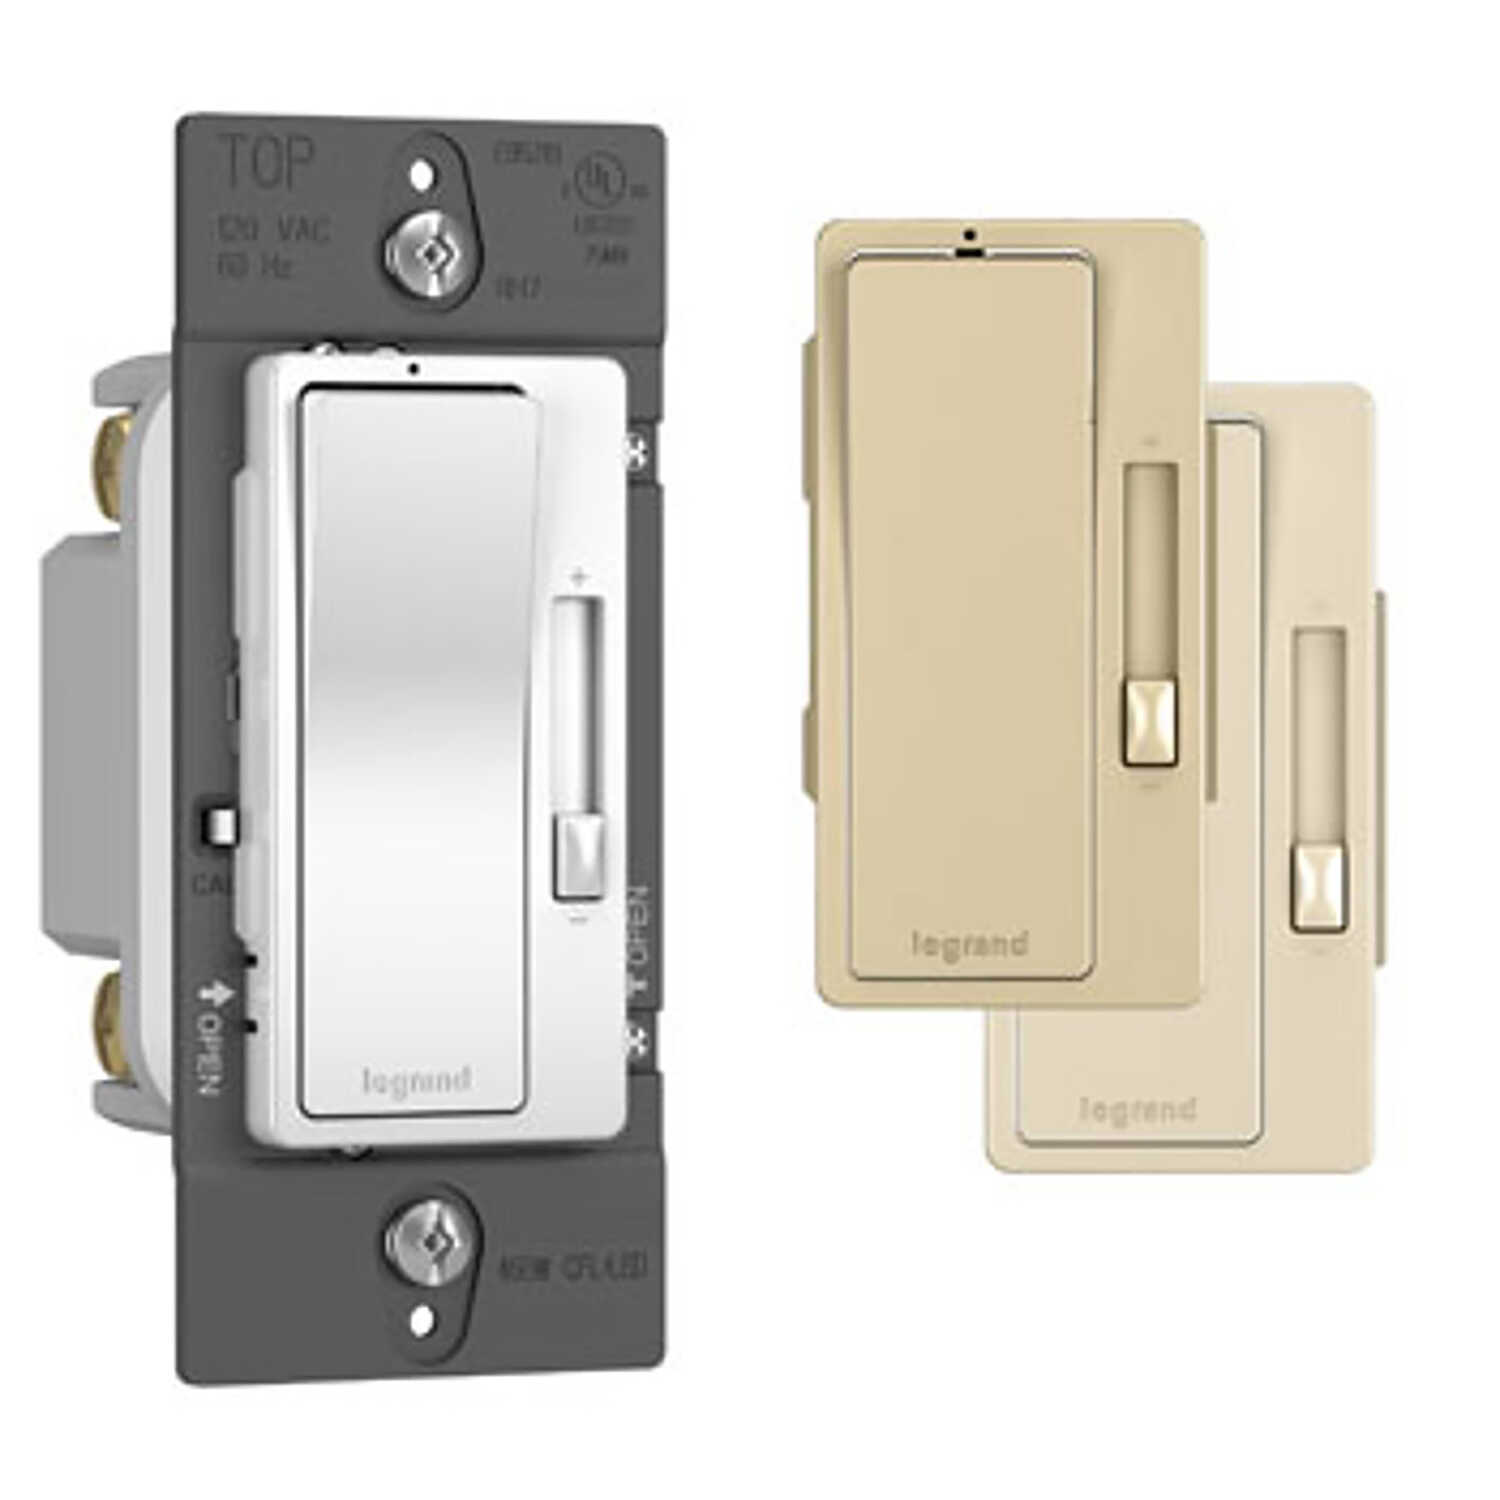 Legrand  Radiant  Multicolored  700 watts Slide  Dimmer Switch  1 pk